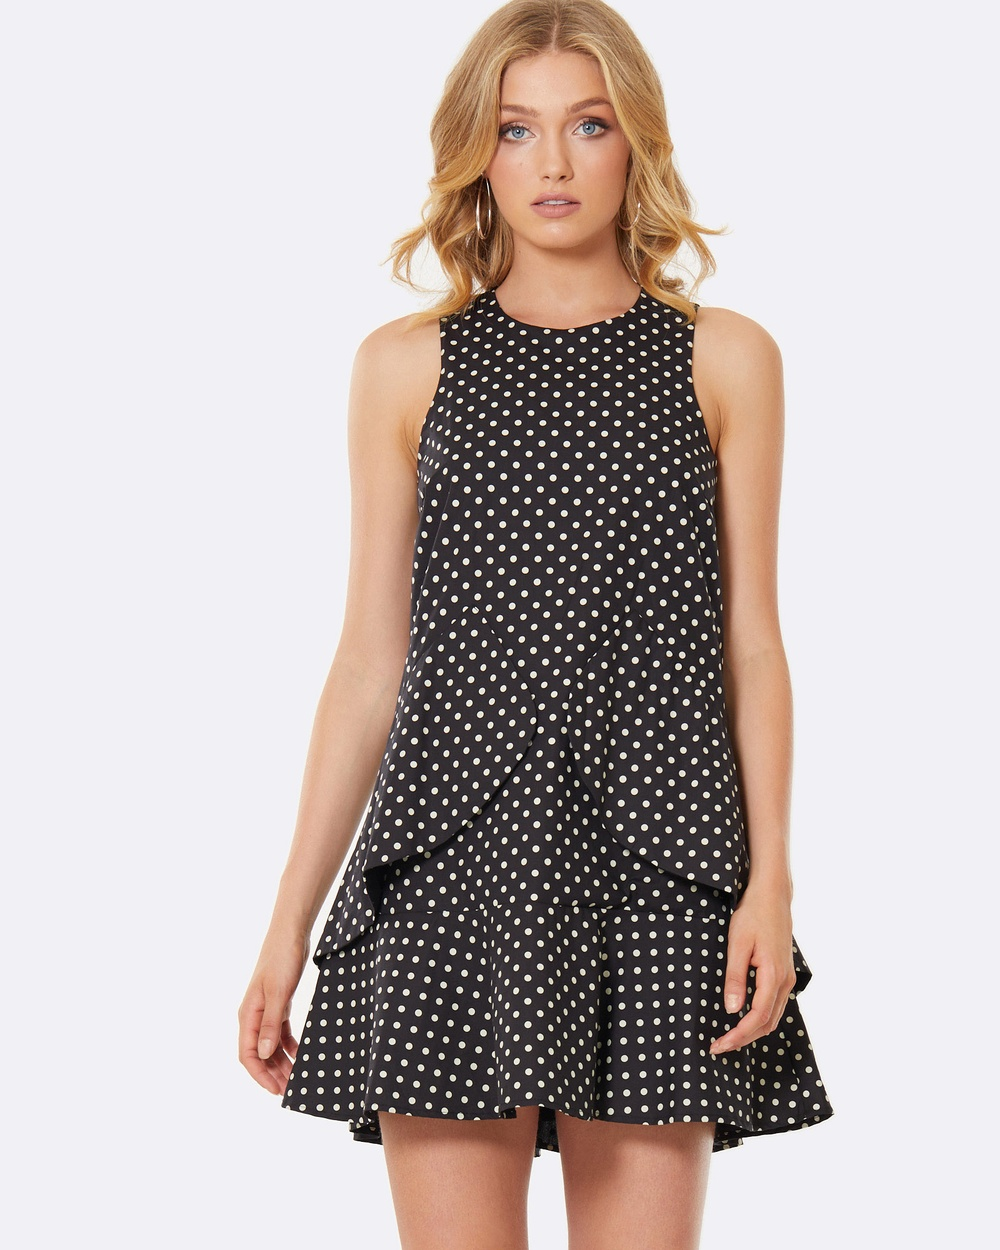 Calli Milly Dress Printed Dresses Black Milly Dress